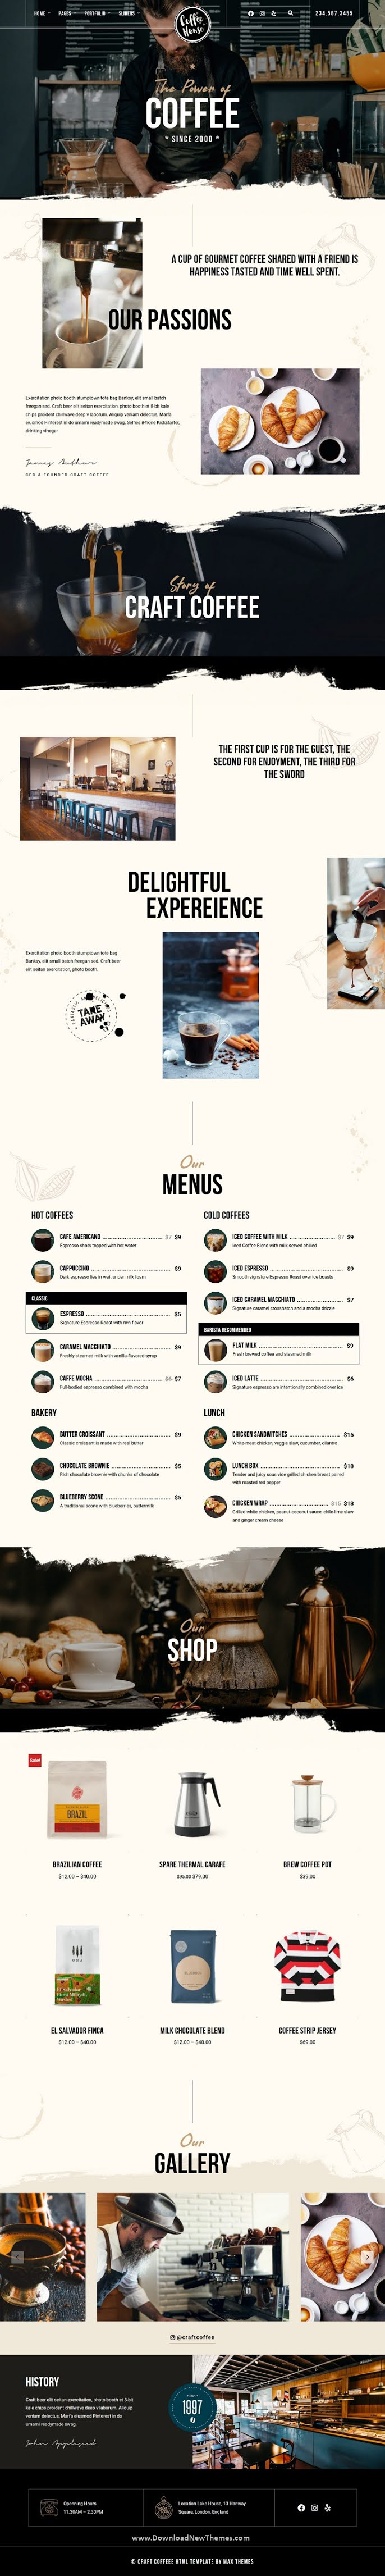 Coffee Shop Cafe Restaurant HTML Template